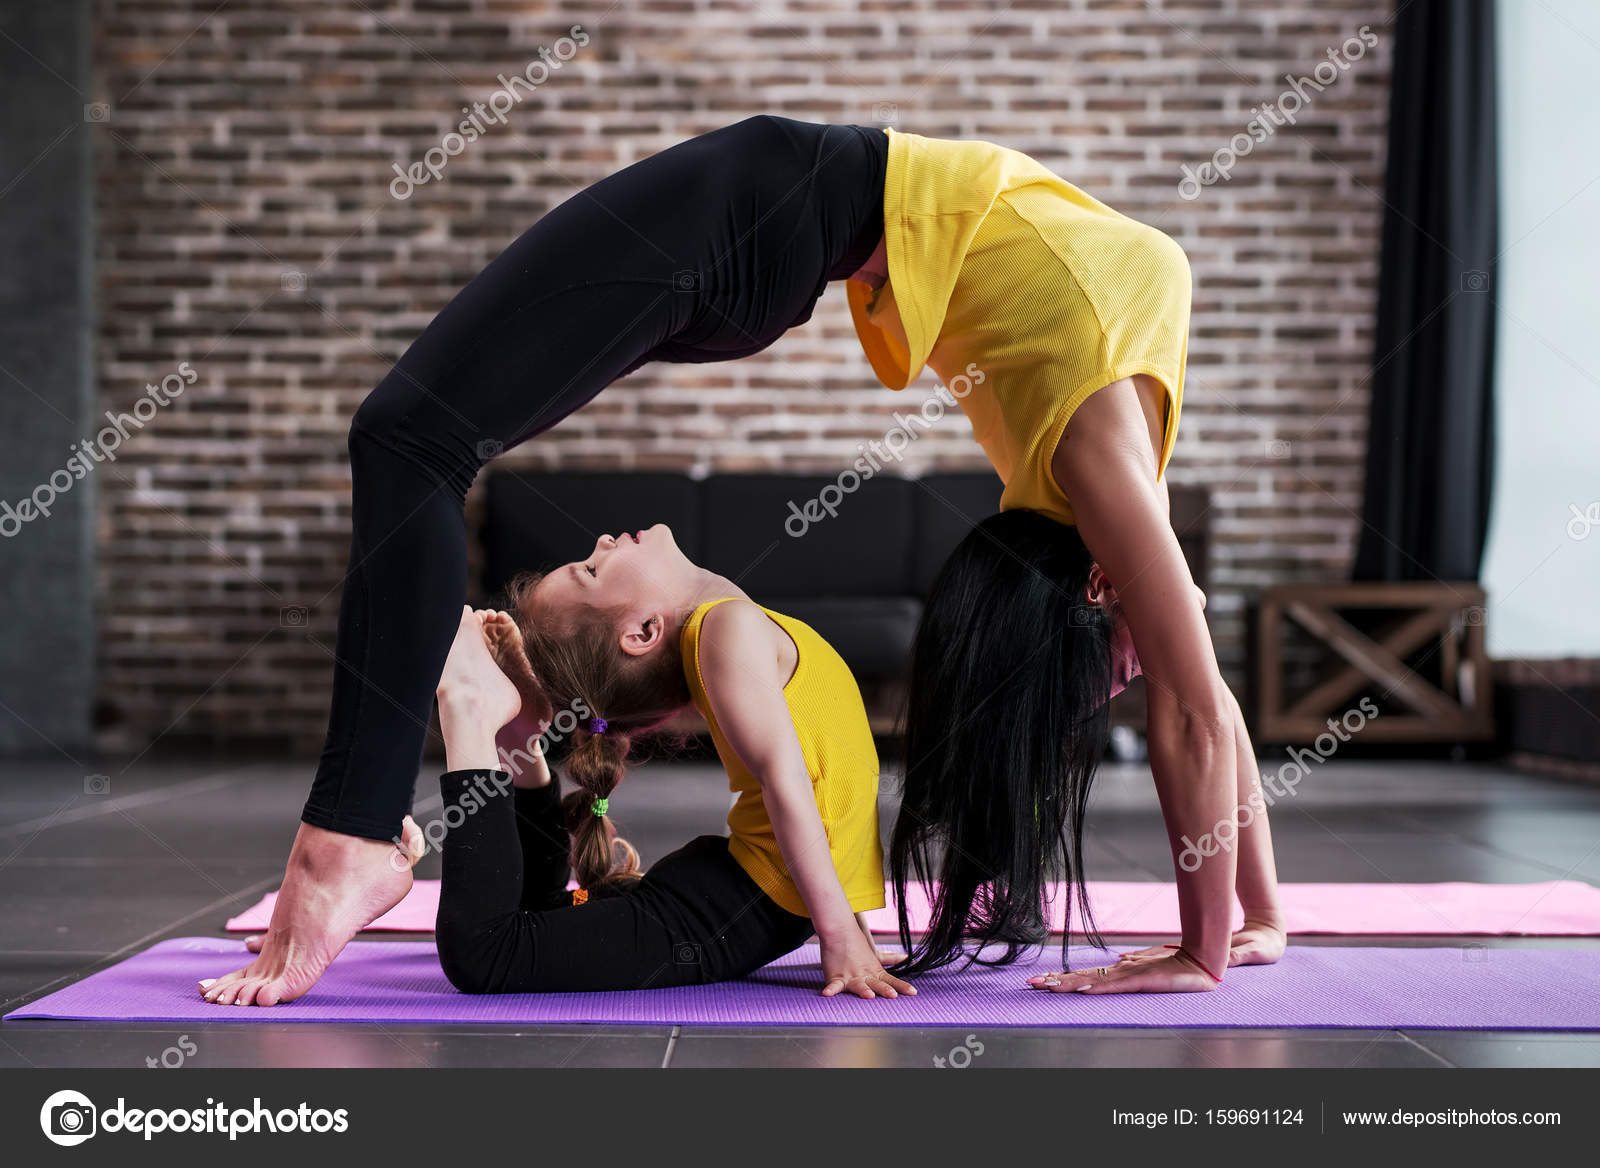 Adult Woman And Child Girl Practicing Yoga Together At Home Standing In Bridge Pose Kid Doing King Cobra Posture Photo By Undrey